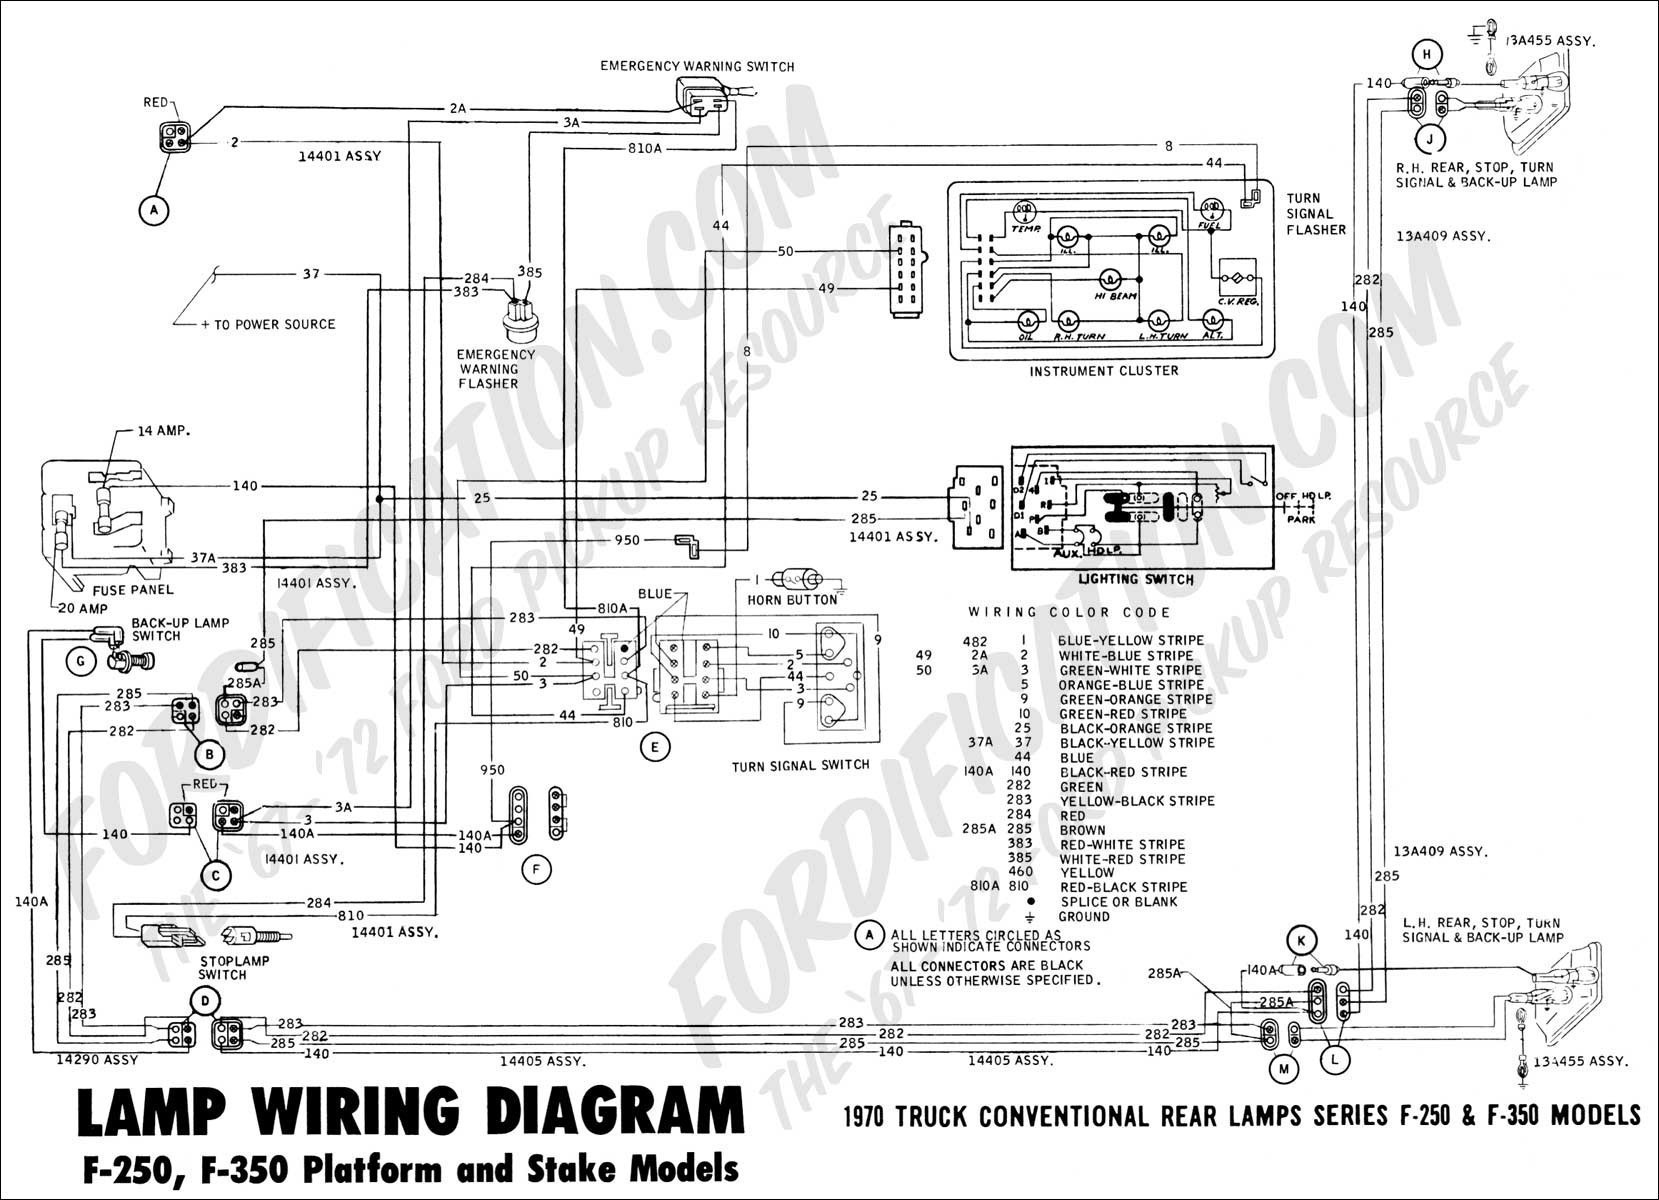 2002 Ford F 150 Tail Light Wiring Diagram - Wiring Diagram G8  F Tailight Wiring Diagram on